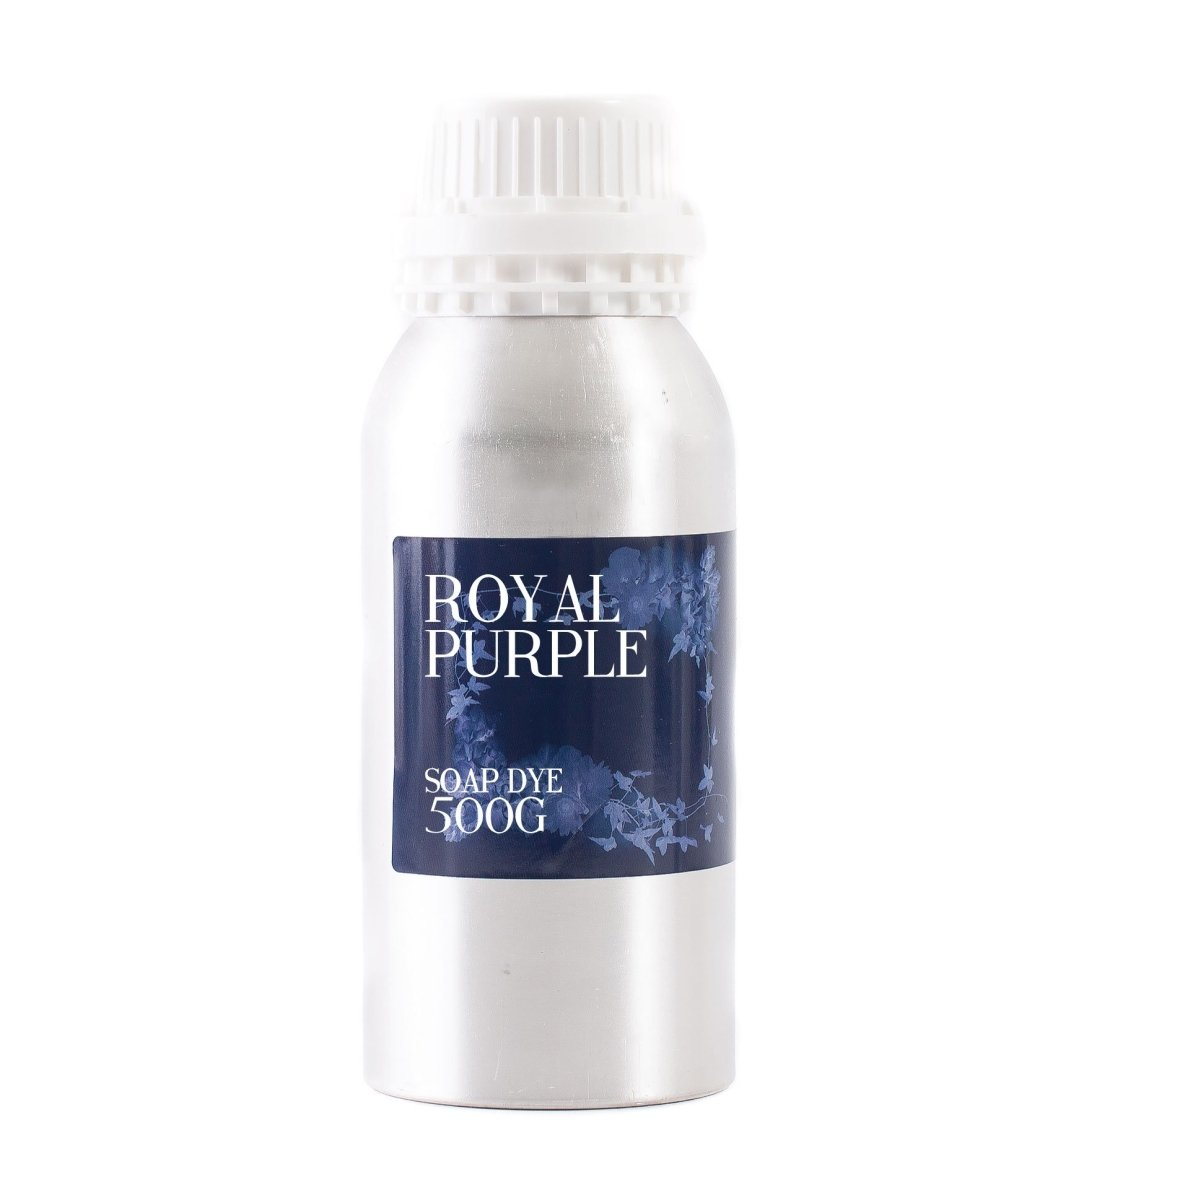 Royal Purple Soap Dye - Mystic Moments UK